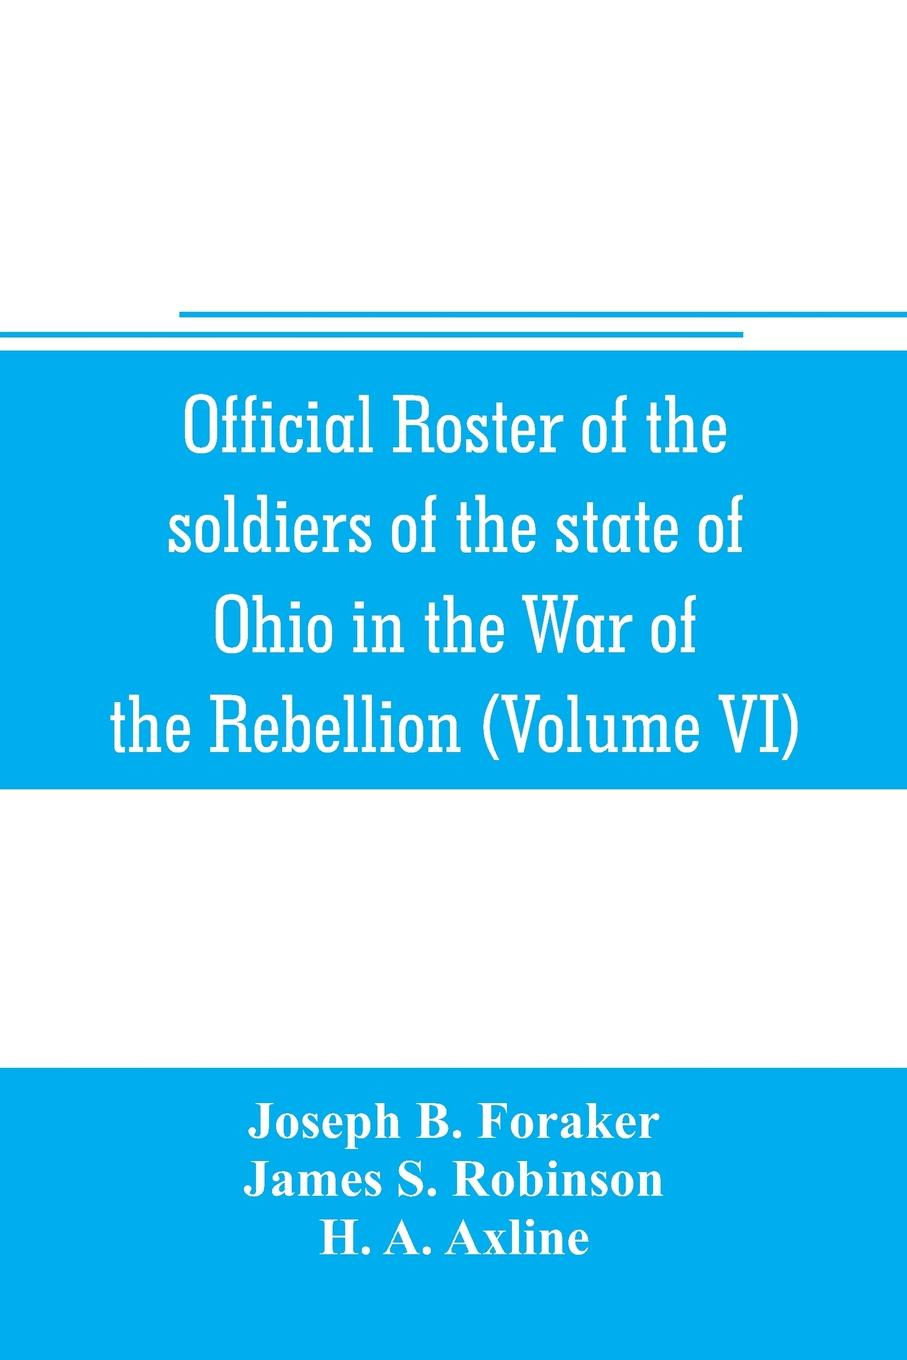 Official roster of the soldiers of the state of Ohio in the War of the Rebellion, 1861-1866 (Volume VI) 70th-86th Regiments-Infantry